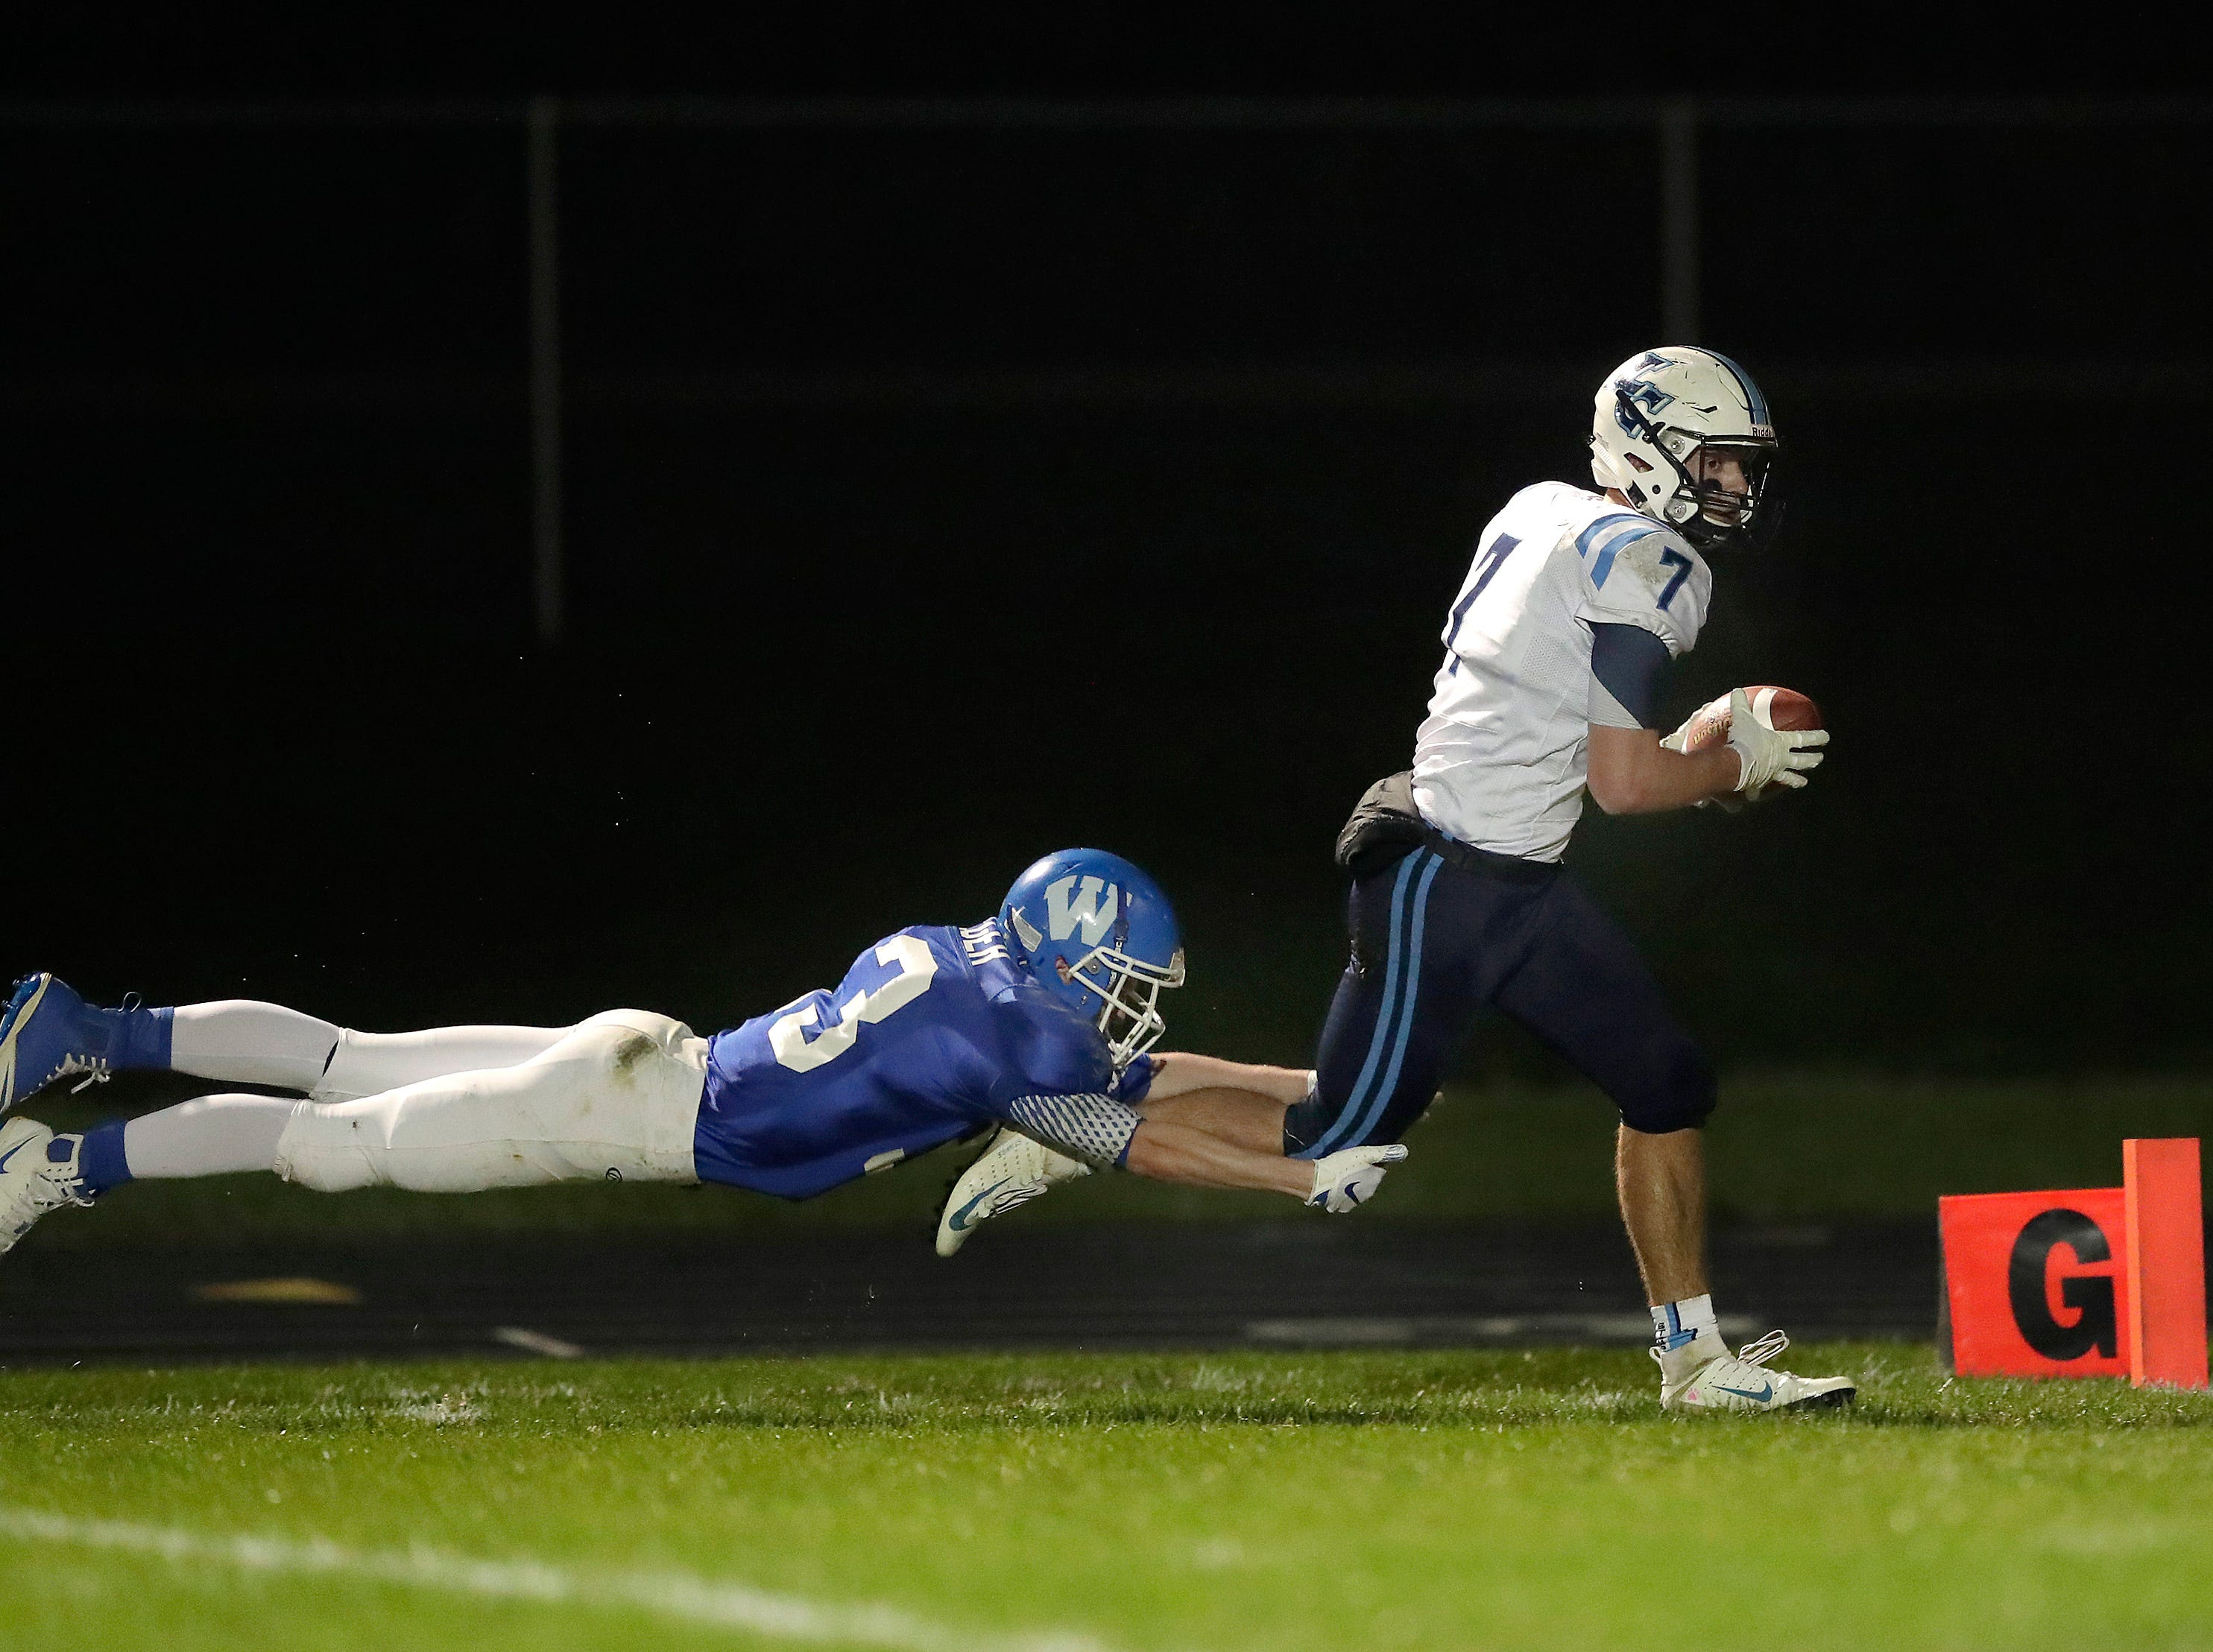 Little Chute High School's #7 Adam Hietpas scores against the defense of Wrightstown High School's #33 Will Braeger during their North Eastern Conference football game on Friday, October 12, 2018 in Wrightstown Wis. 